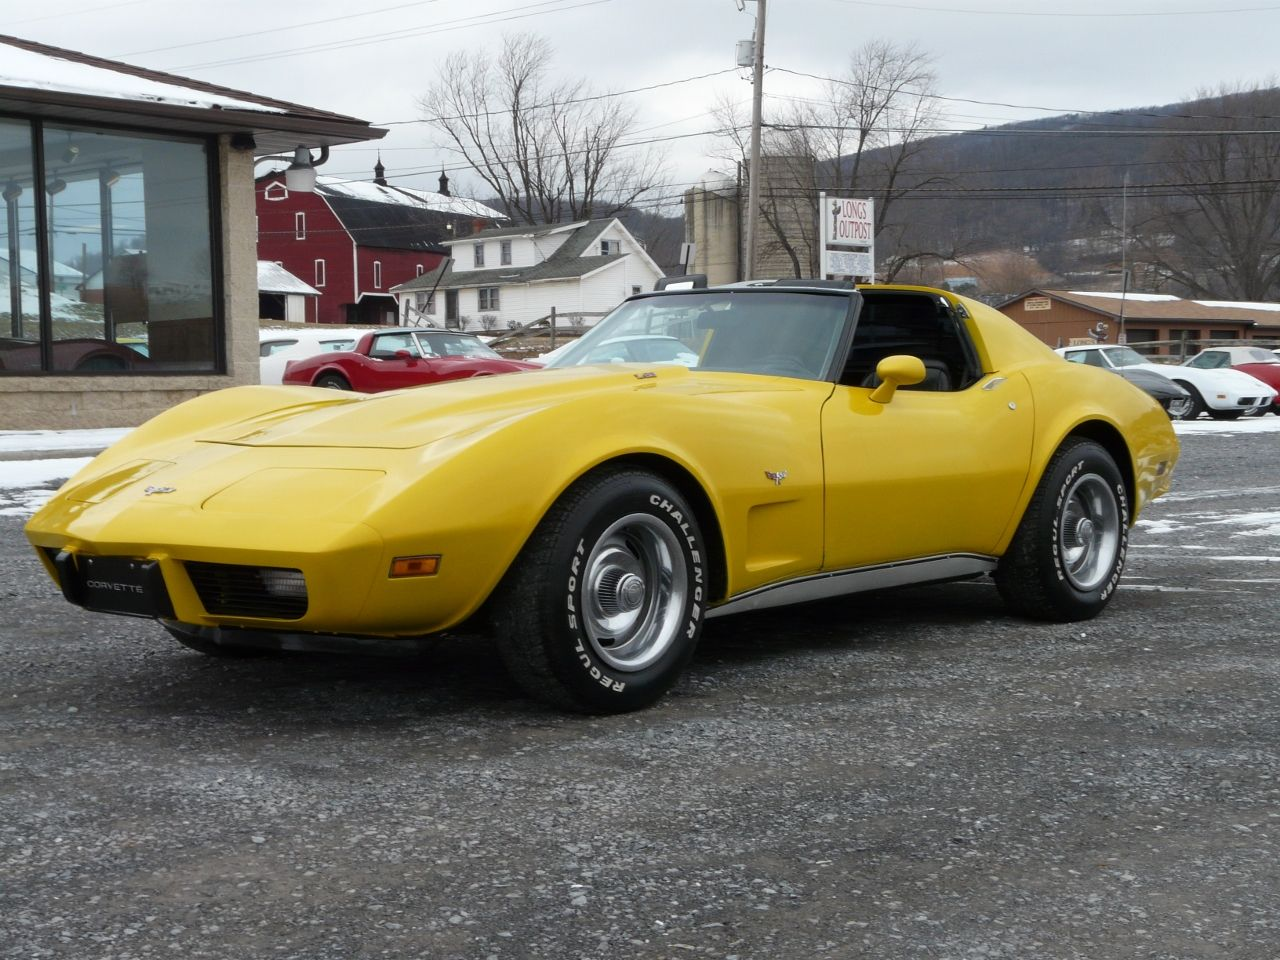 1977 Yellow L82 4spd Corvette T Top Classic Corvettes For Sale Classic Corvette Corvette For Sale Yellow Corvette